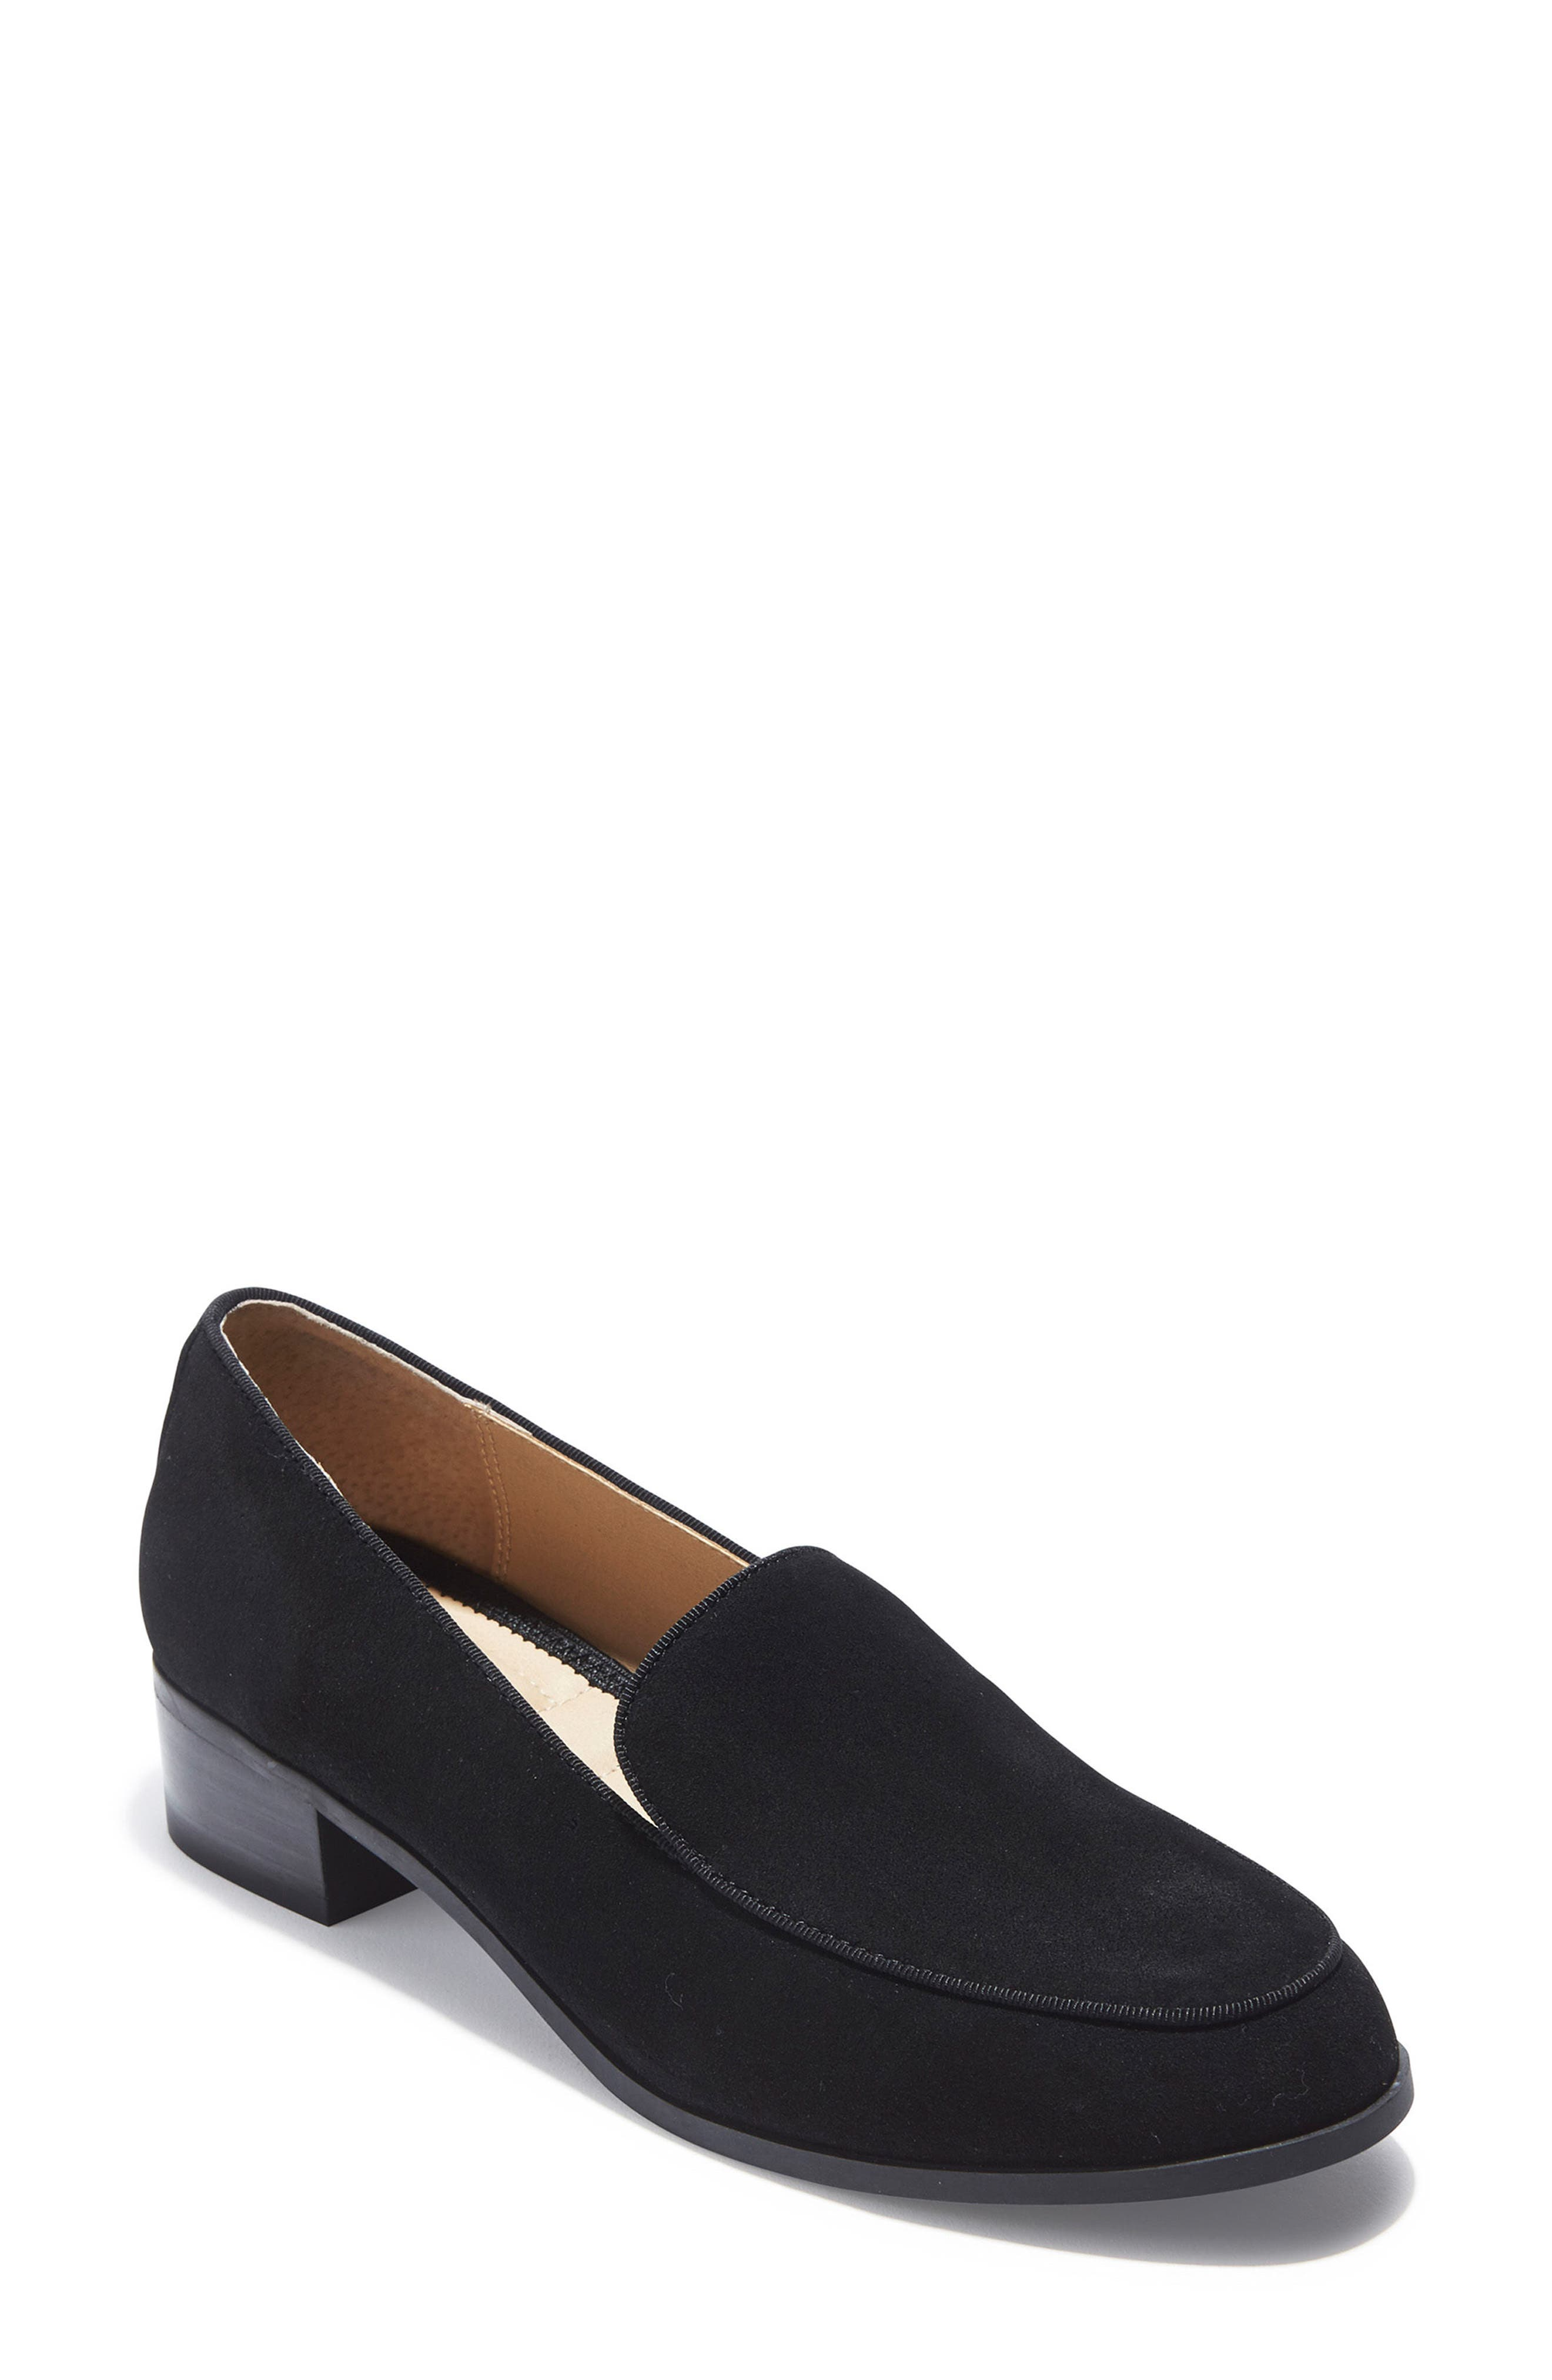 Jazzy Loafer,                             Main thumbnail 1, color,